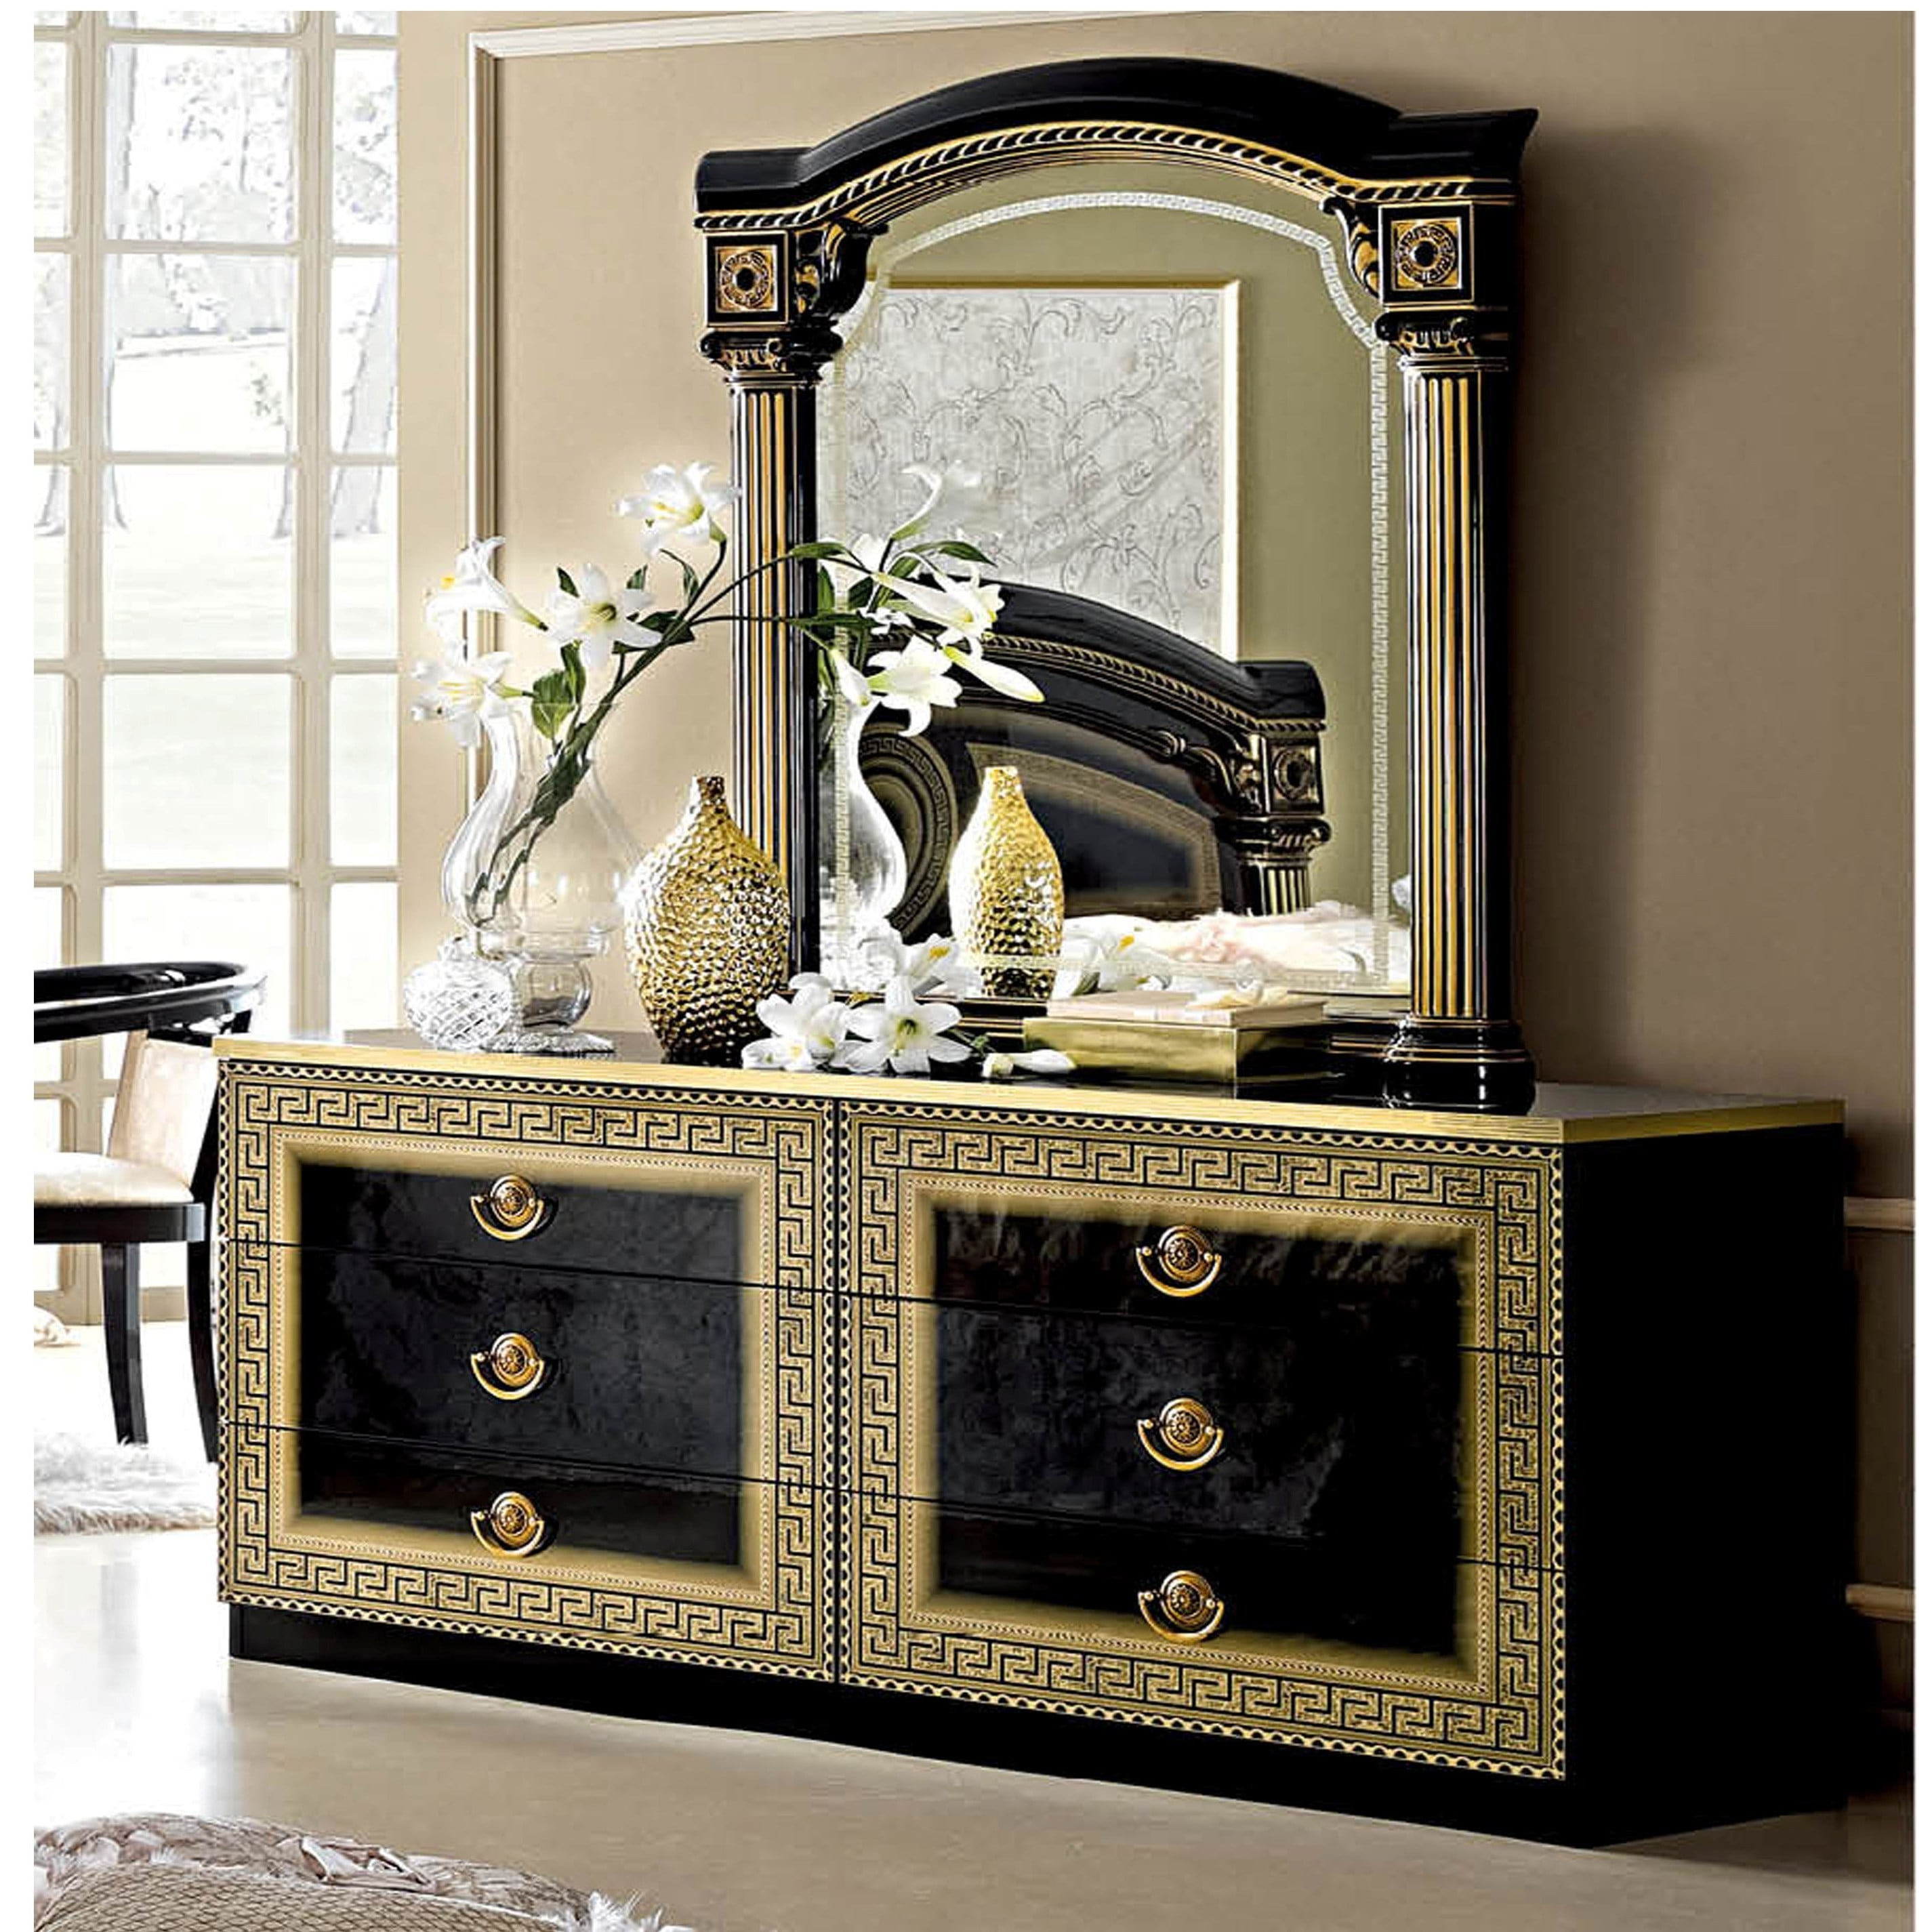 tv furniture romano crystal cabinet mirrored and modern cabinets bedroom zoom contemporary dresser black